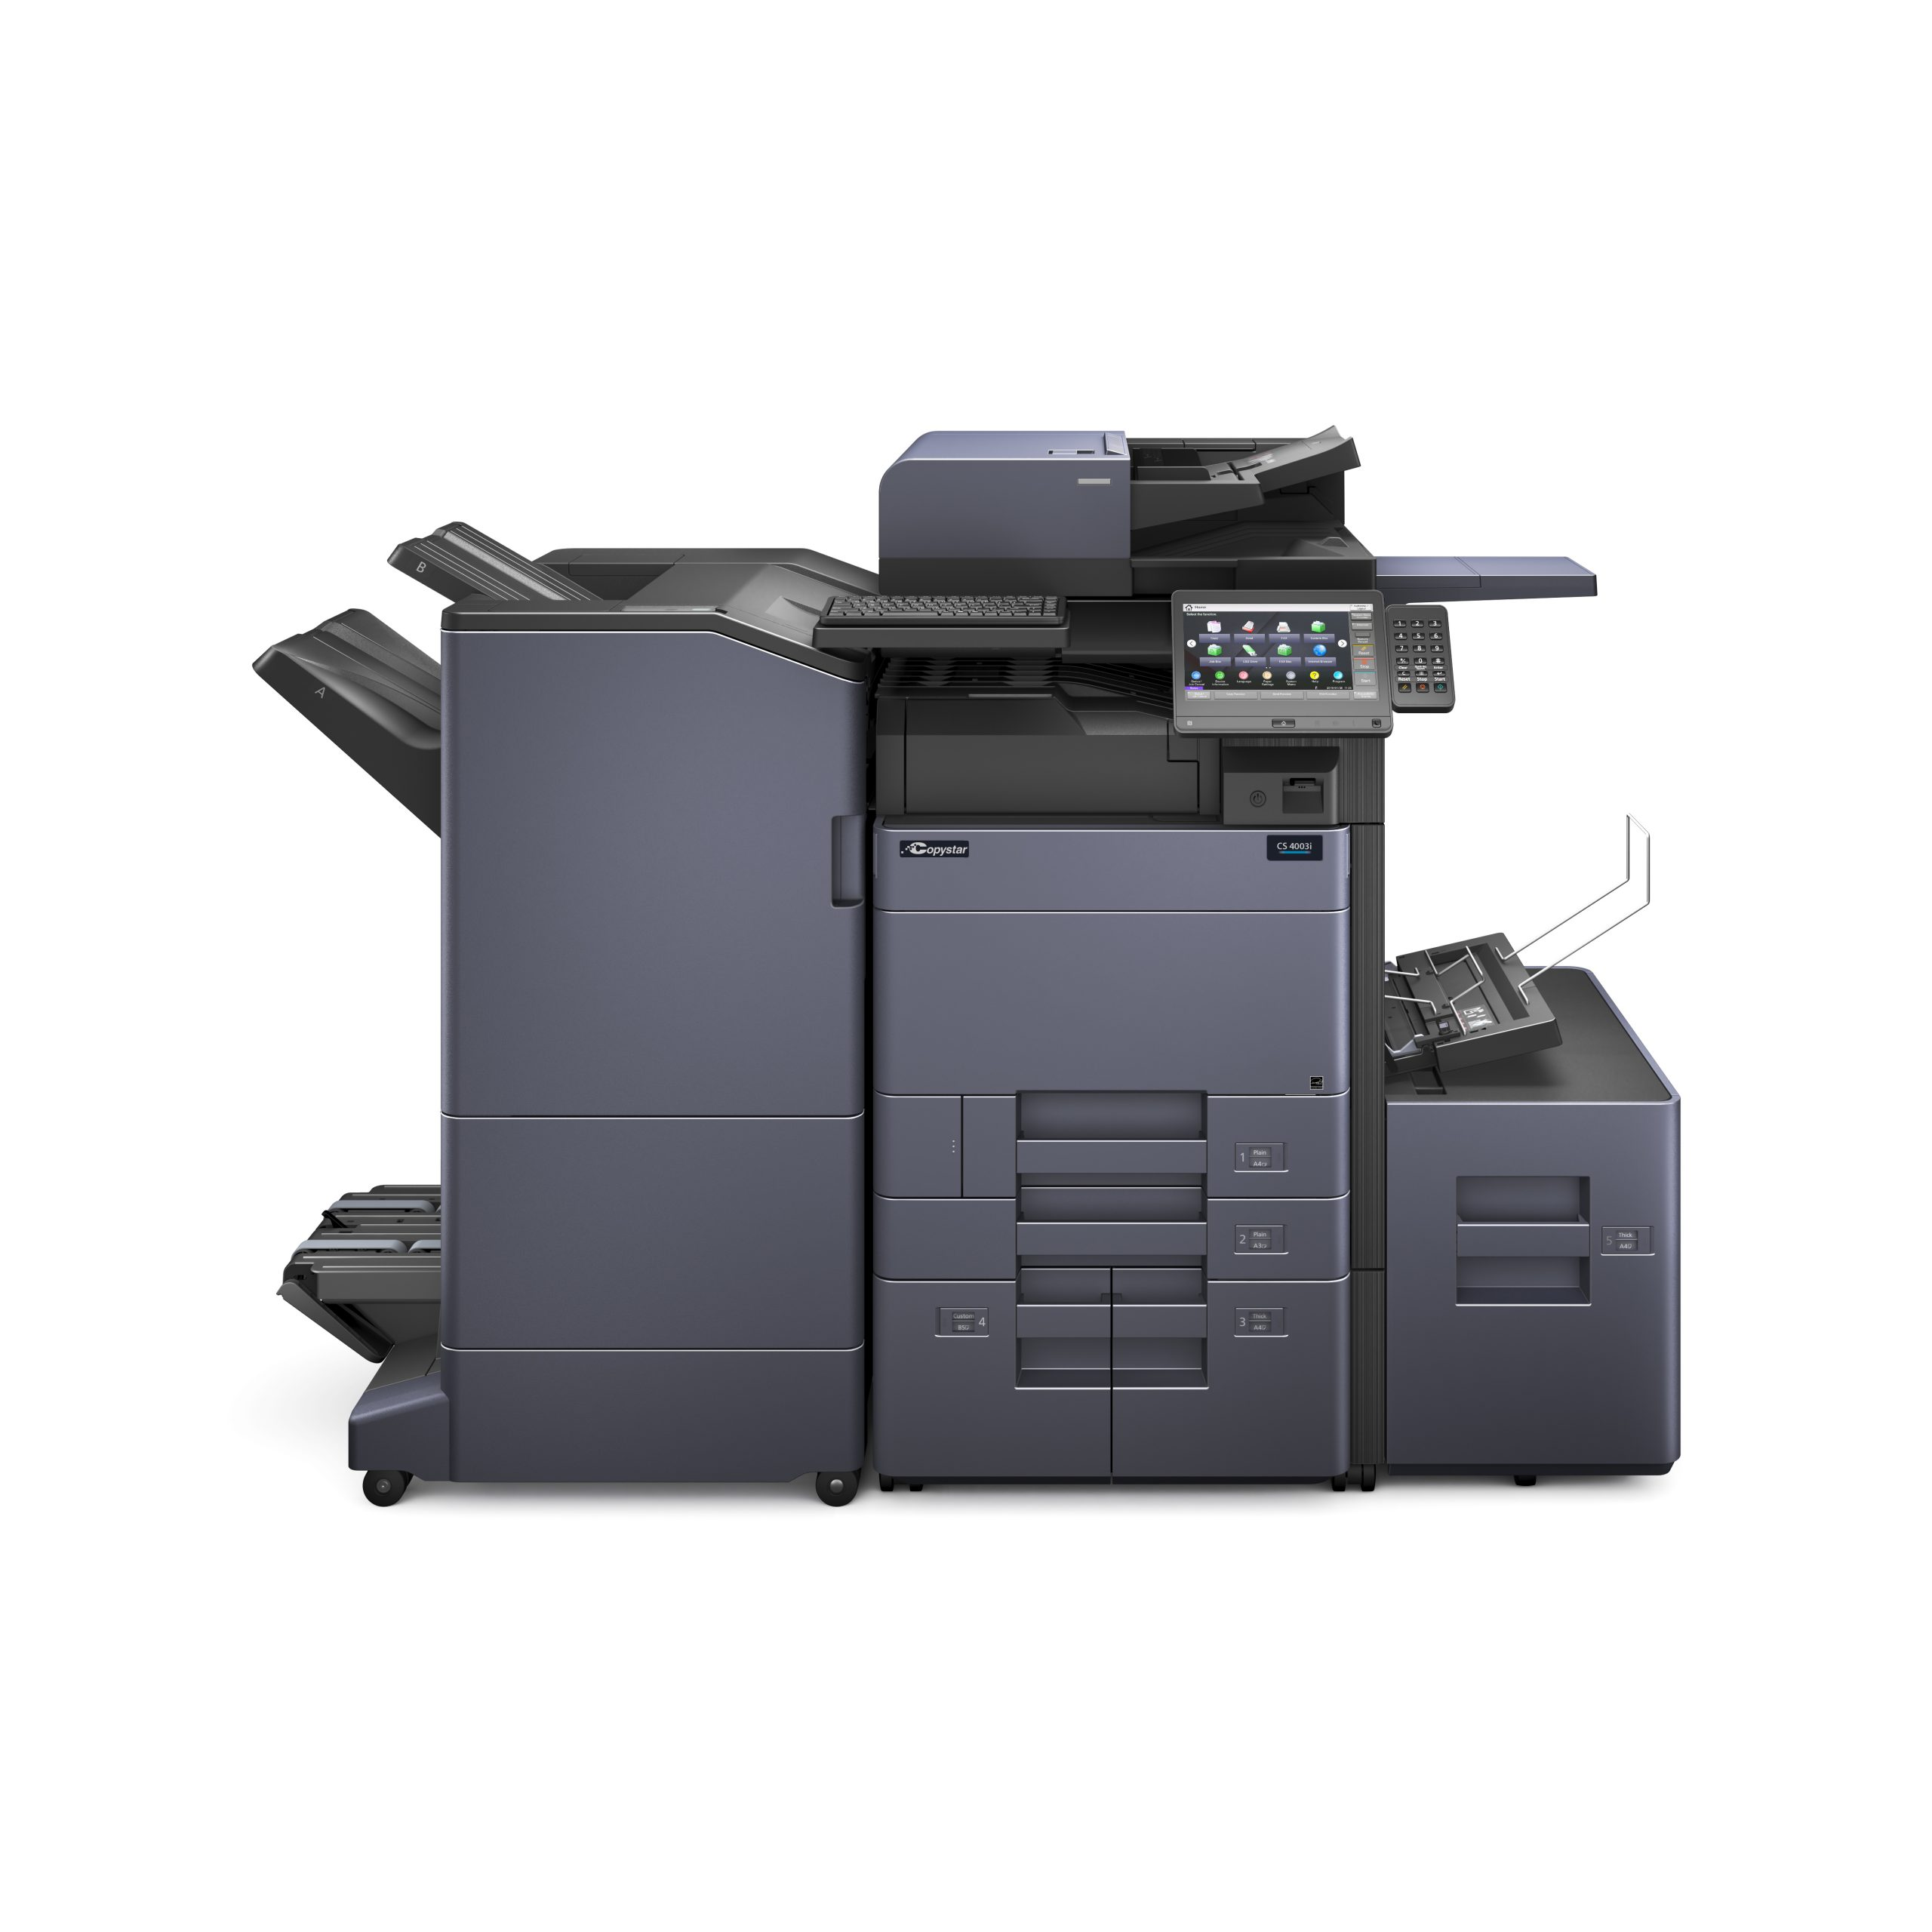 kyocera CS_4003i Copier Lease Rates Minnesota